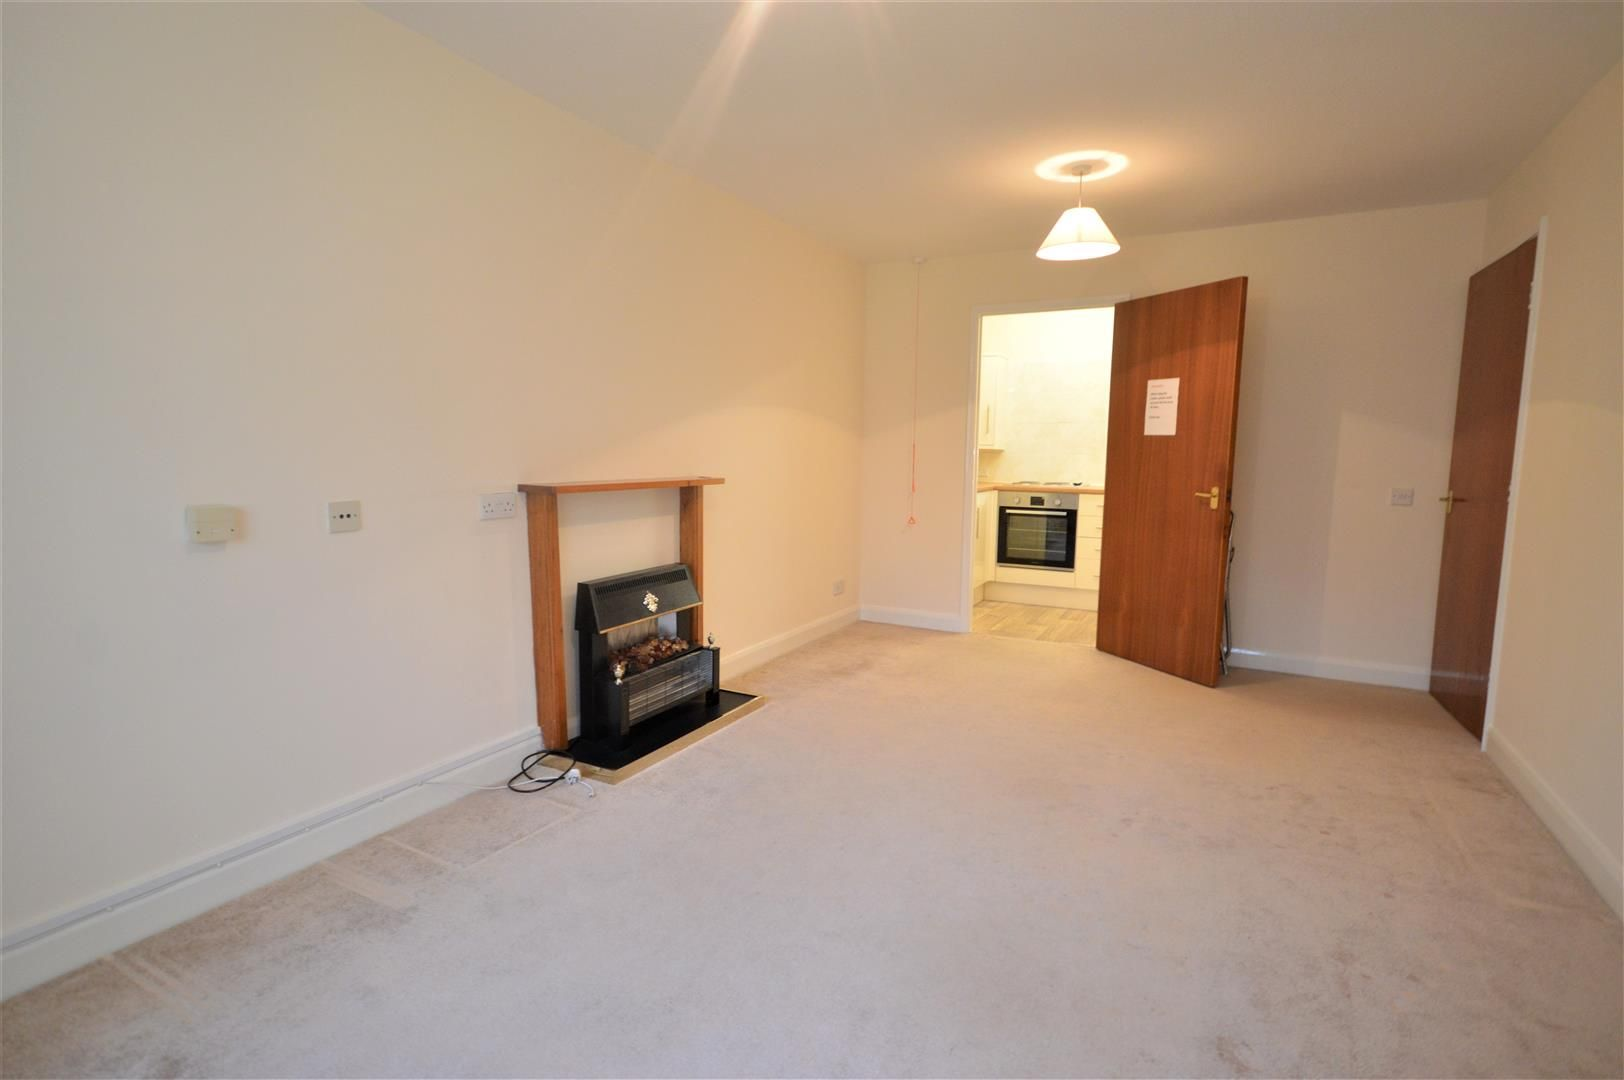 1 bed retirement-property for sale in Leominster 3